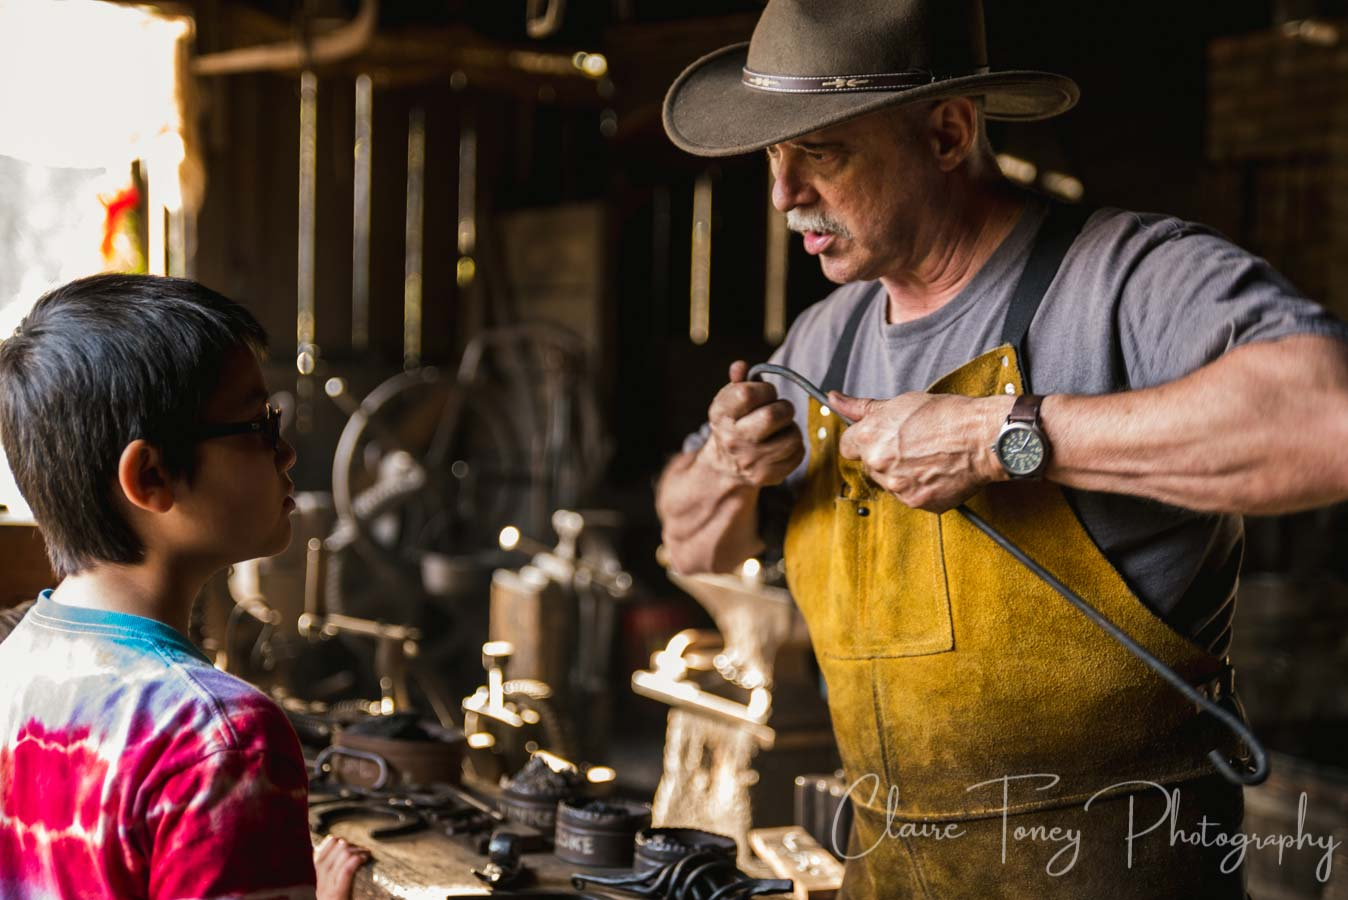 A blacksmith docent at the blacksmith shop where they make everything from horseshoes to home decorations.